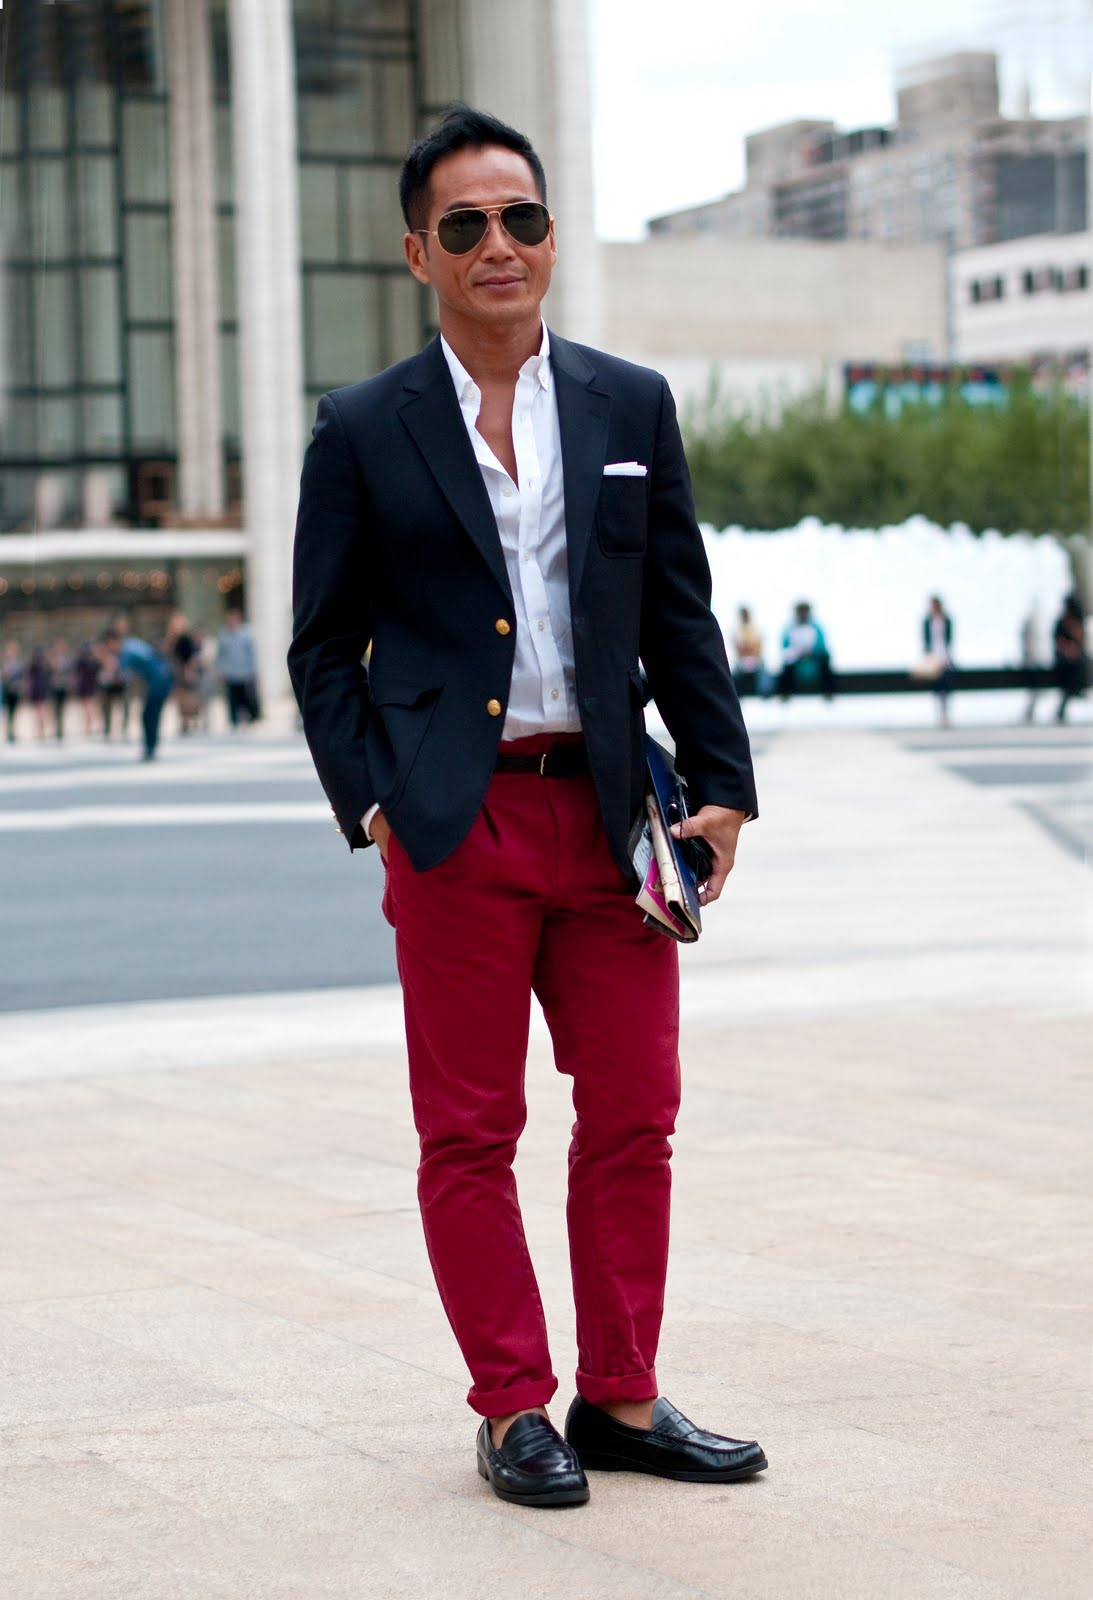 How does one successfully wear red pants? - Page 2